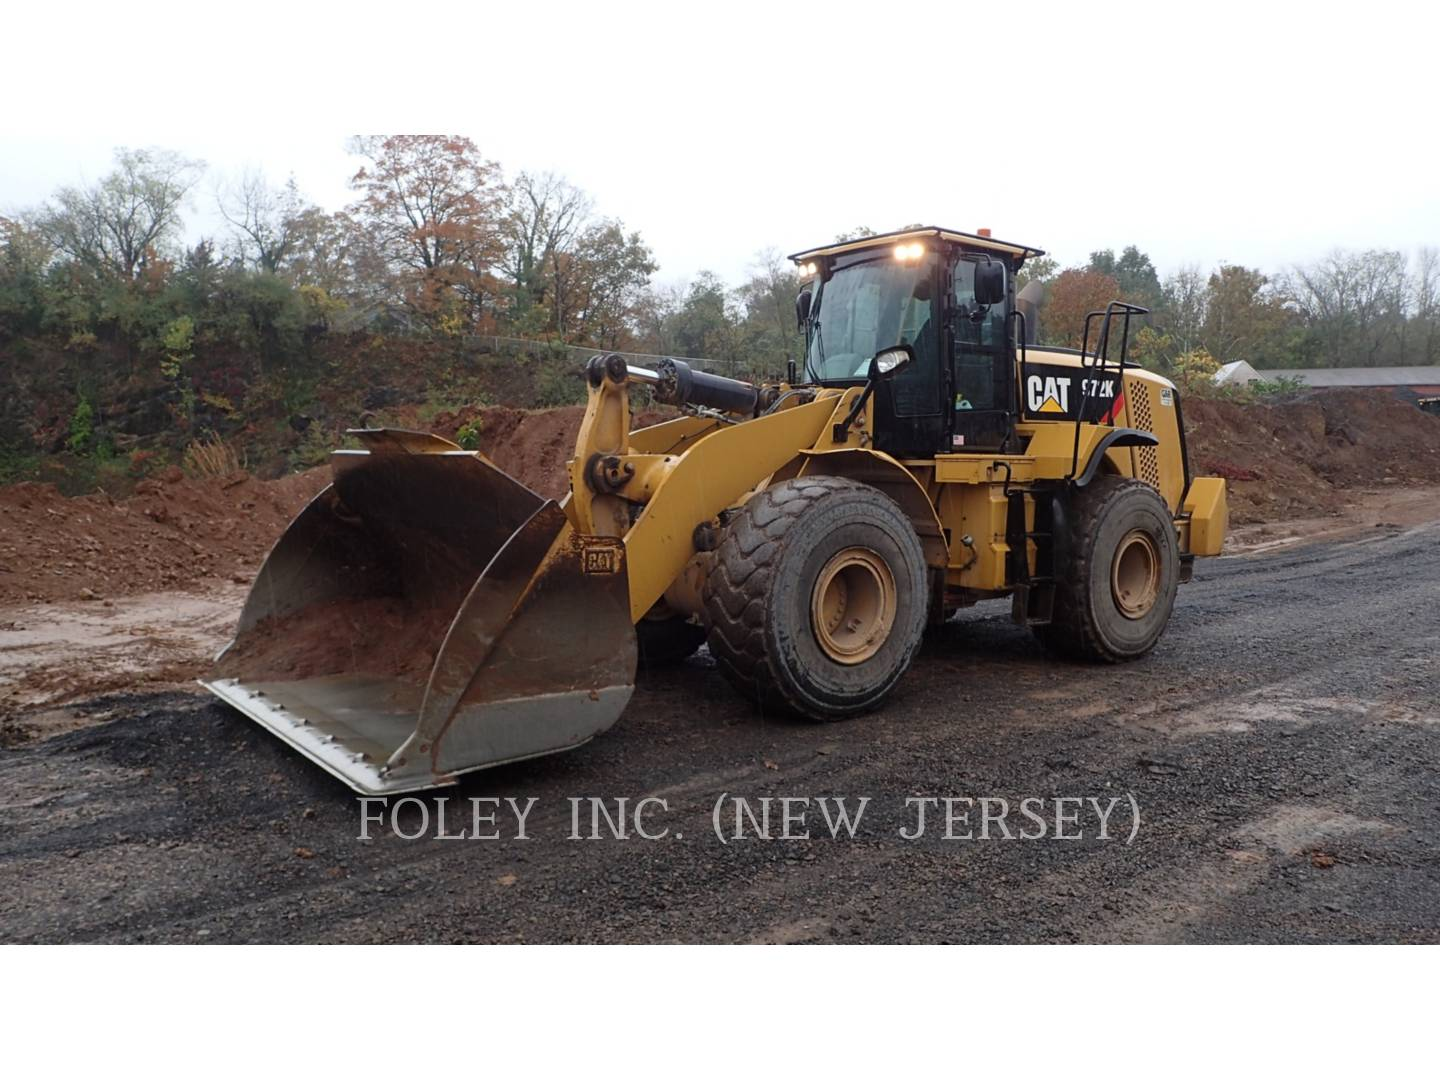 Used Wheel Loaders for Sale in NJ, PA, DE and Staten Island